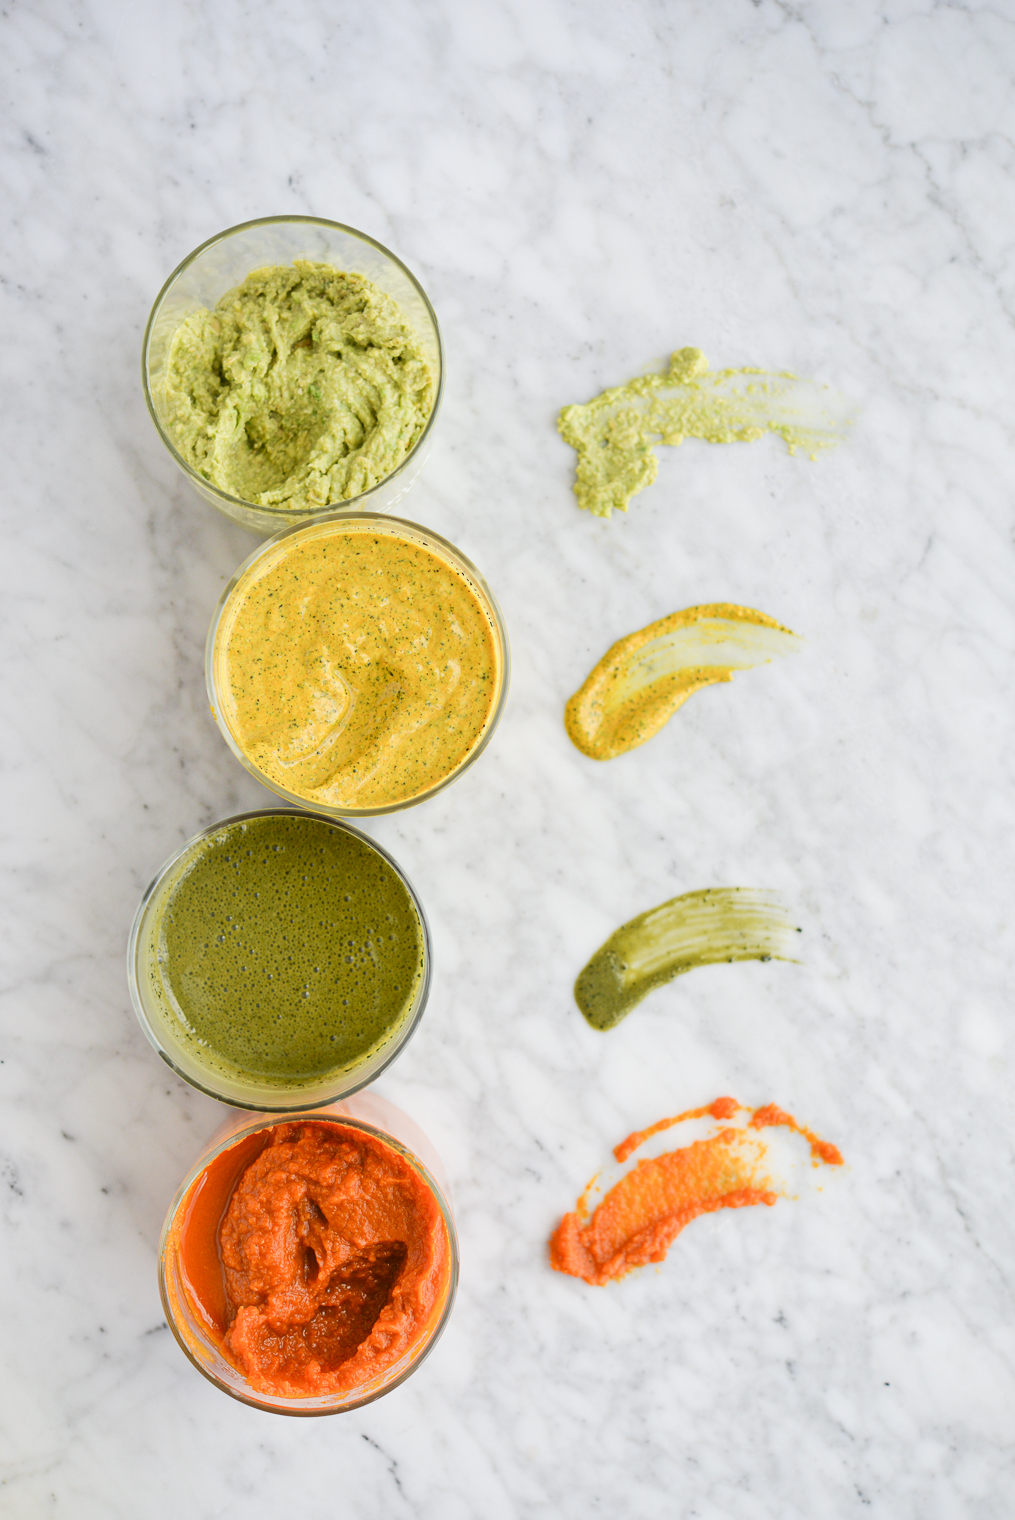 4 homemade face masks - light green, bright yellow, dark green, and orange - lined up in a row with smears beside them on a marble surface